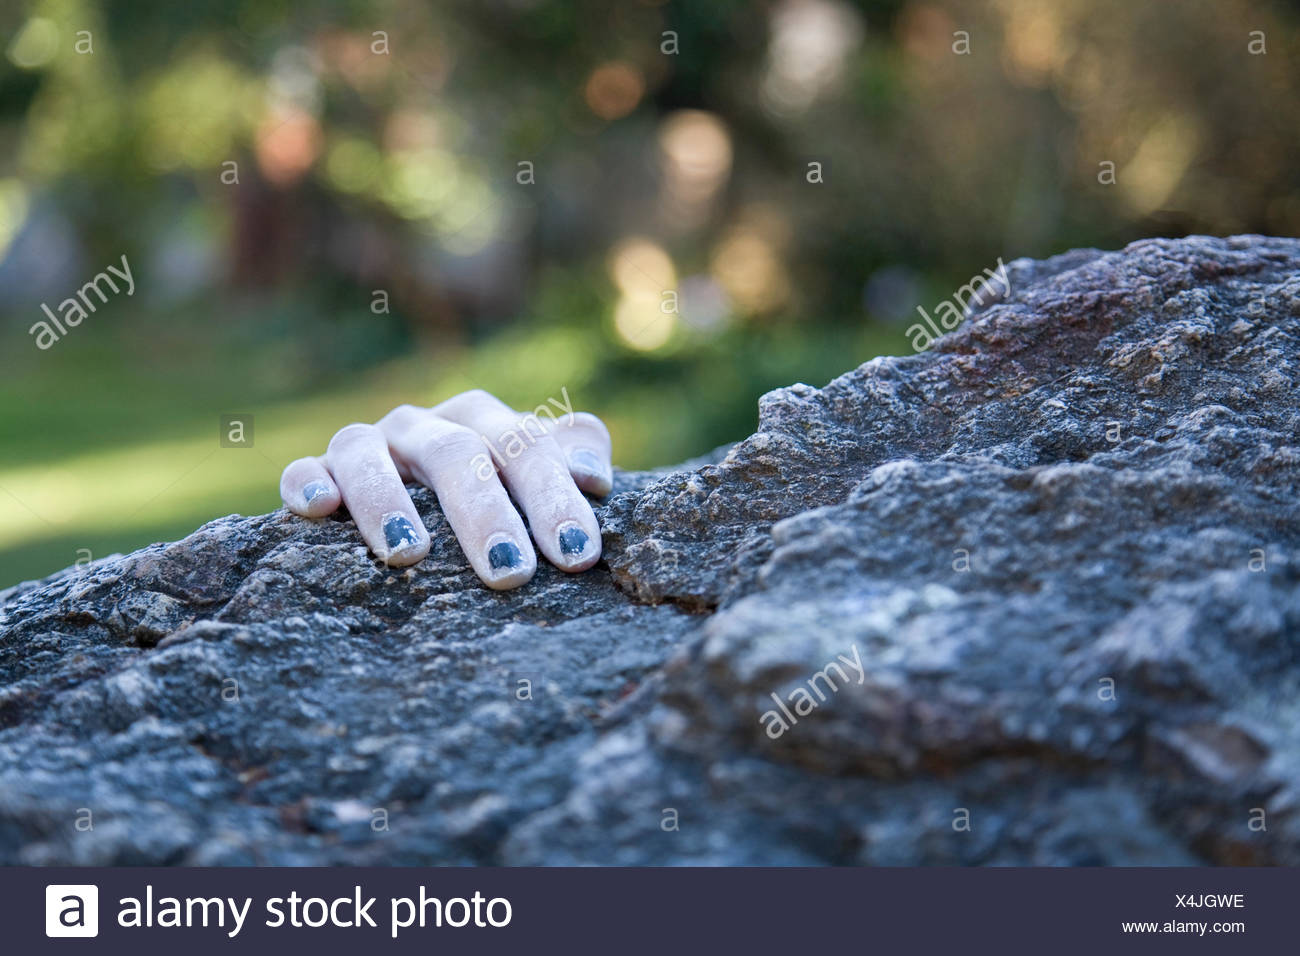 A climber's hand appears at the edge of a precipice during a bouldering session at Indian Rock in Berkeley, CA. - Stock Image